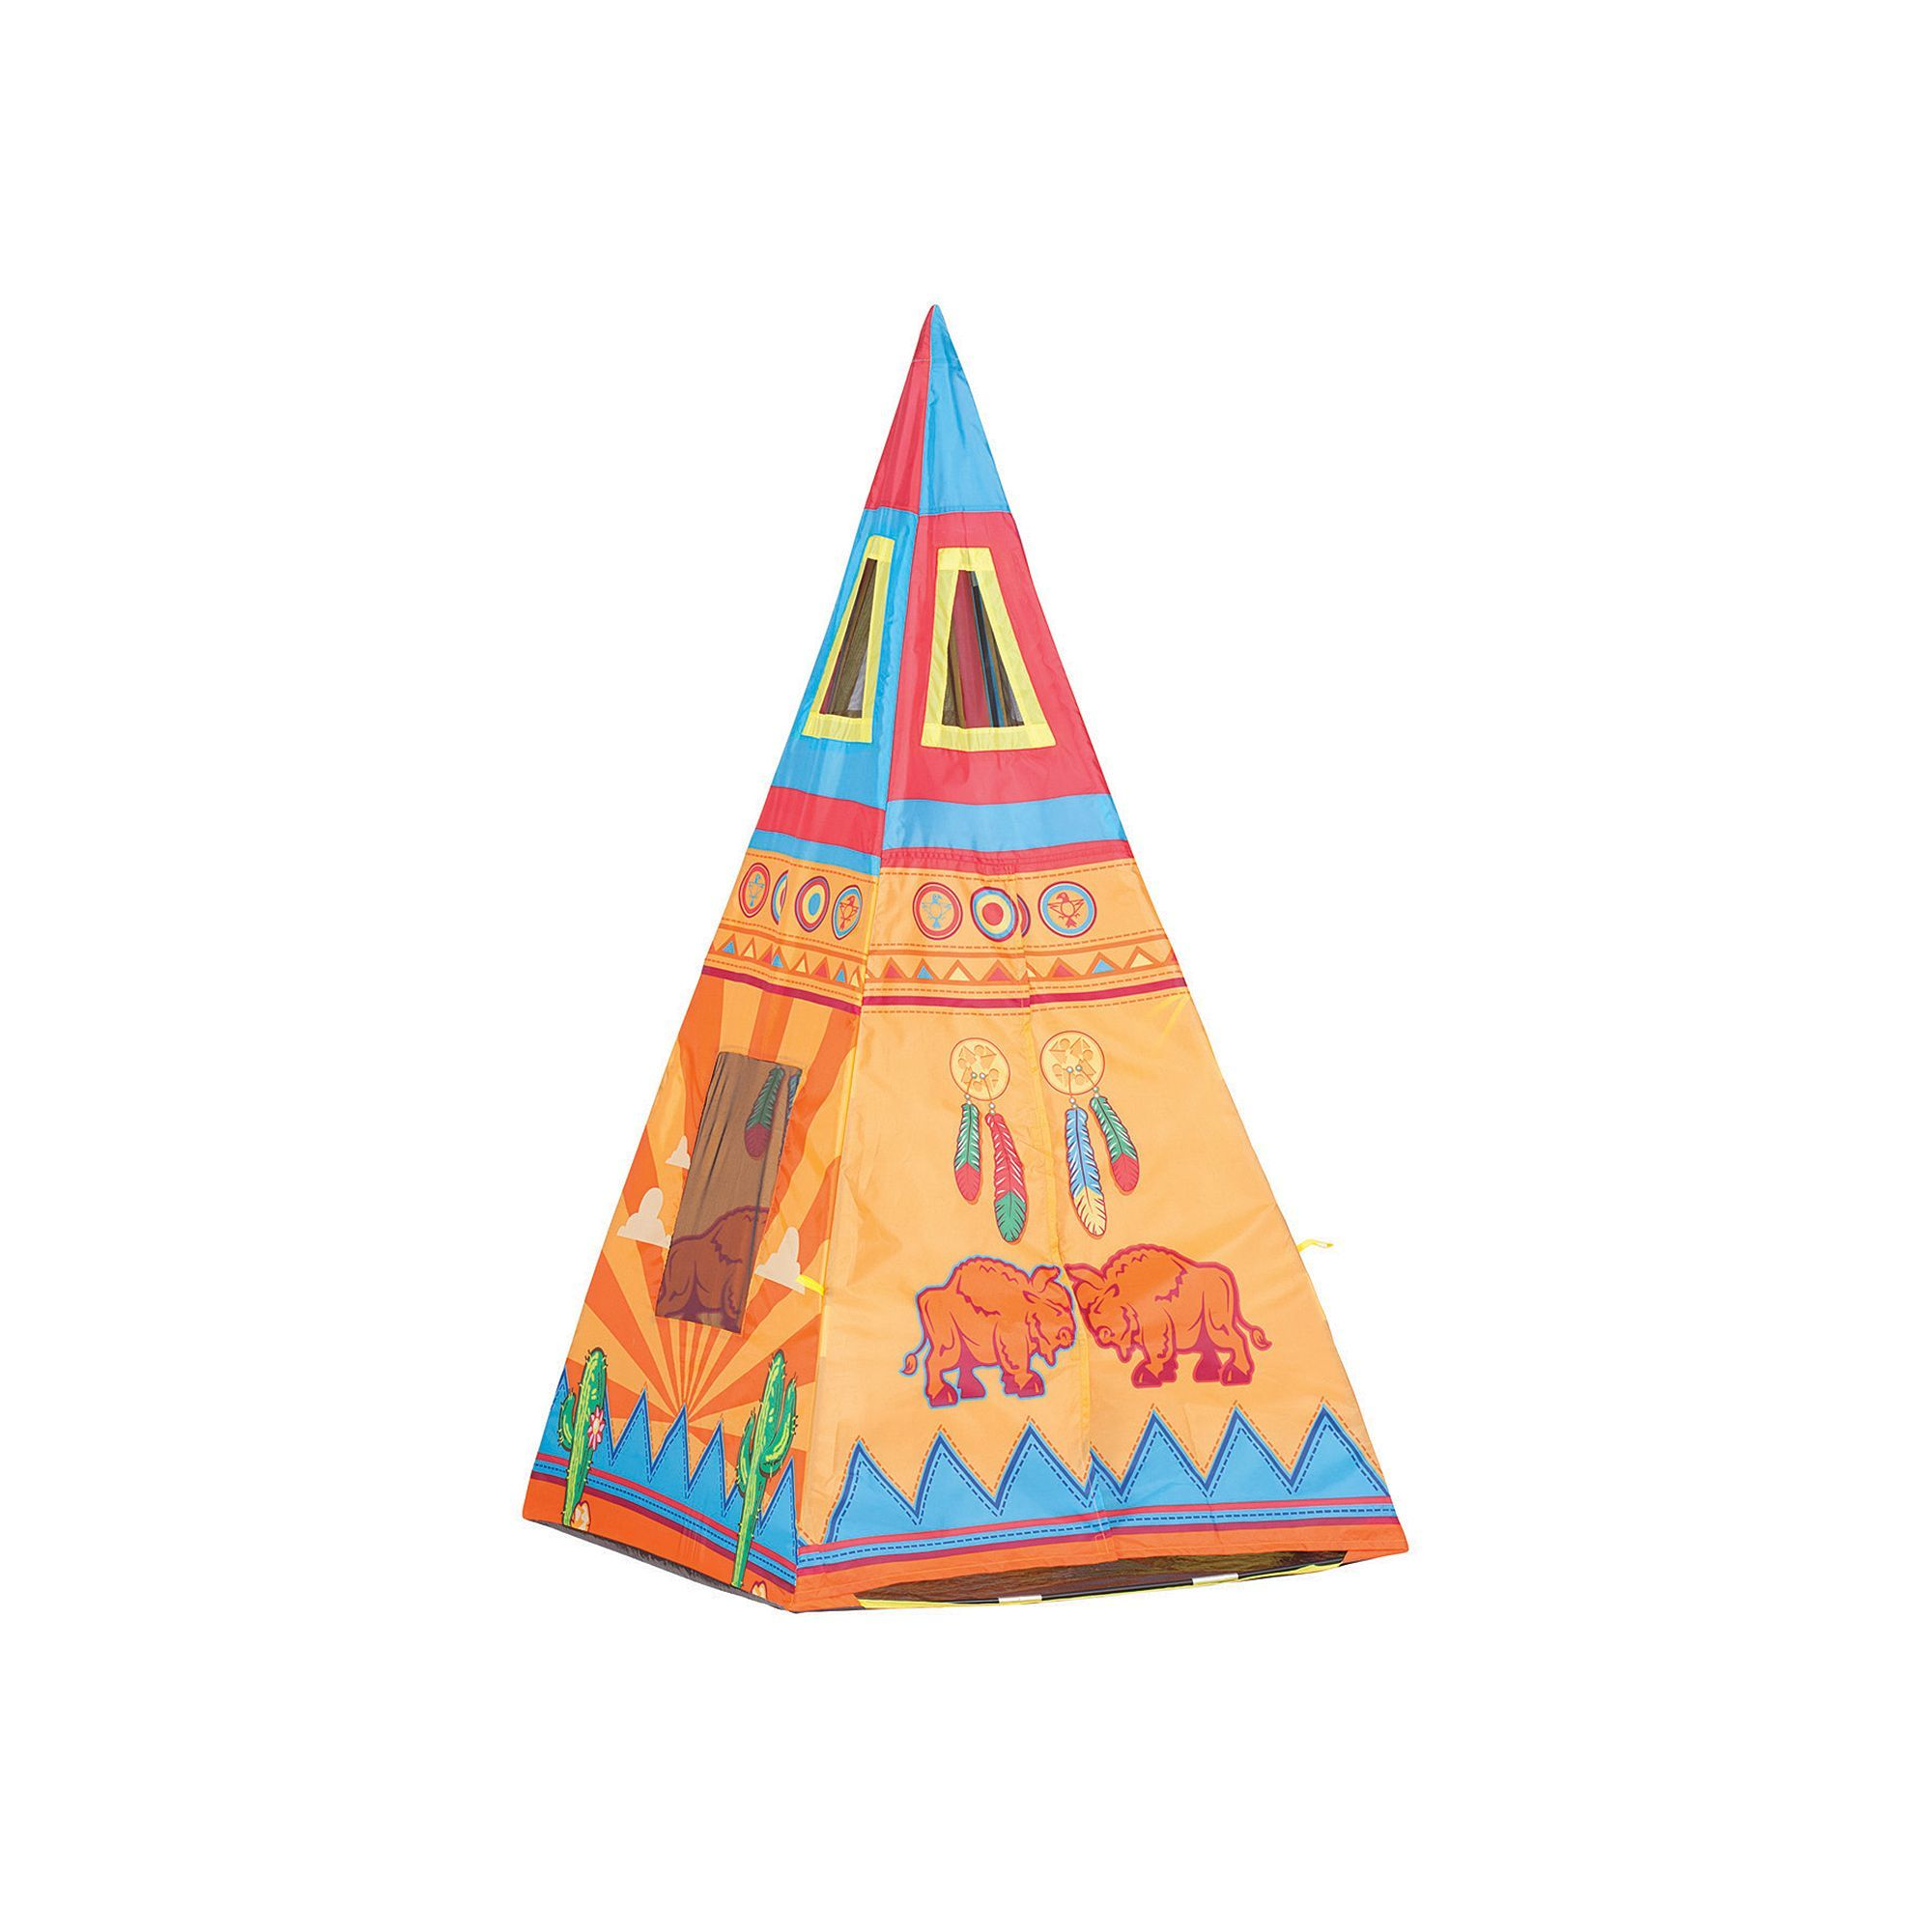 Pacific Play Tents Santa Fe Teepee Tent Multicolor Durable  sc 1 st  Pinterest & Pacific Play Tents Santa Fe Teepee Tent Multicolor   Tent Plays ...